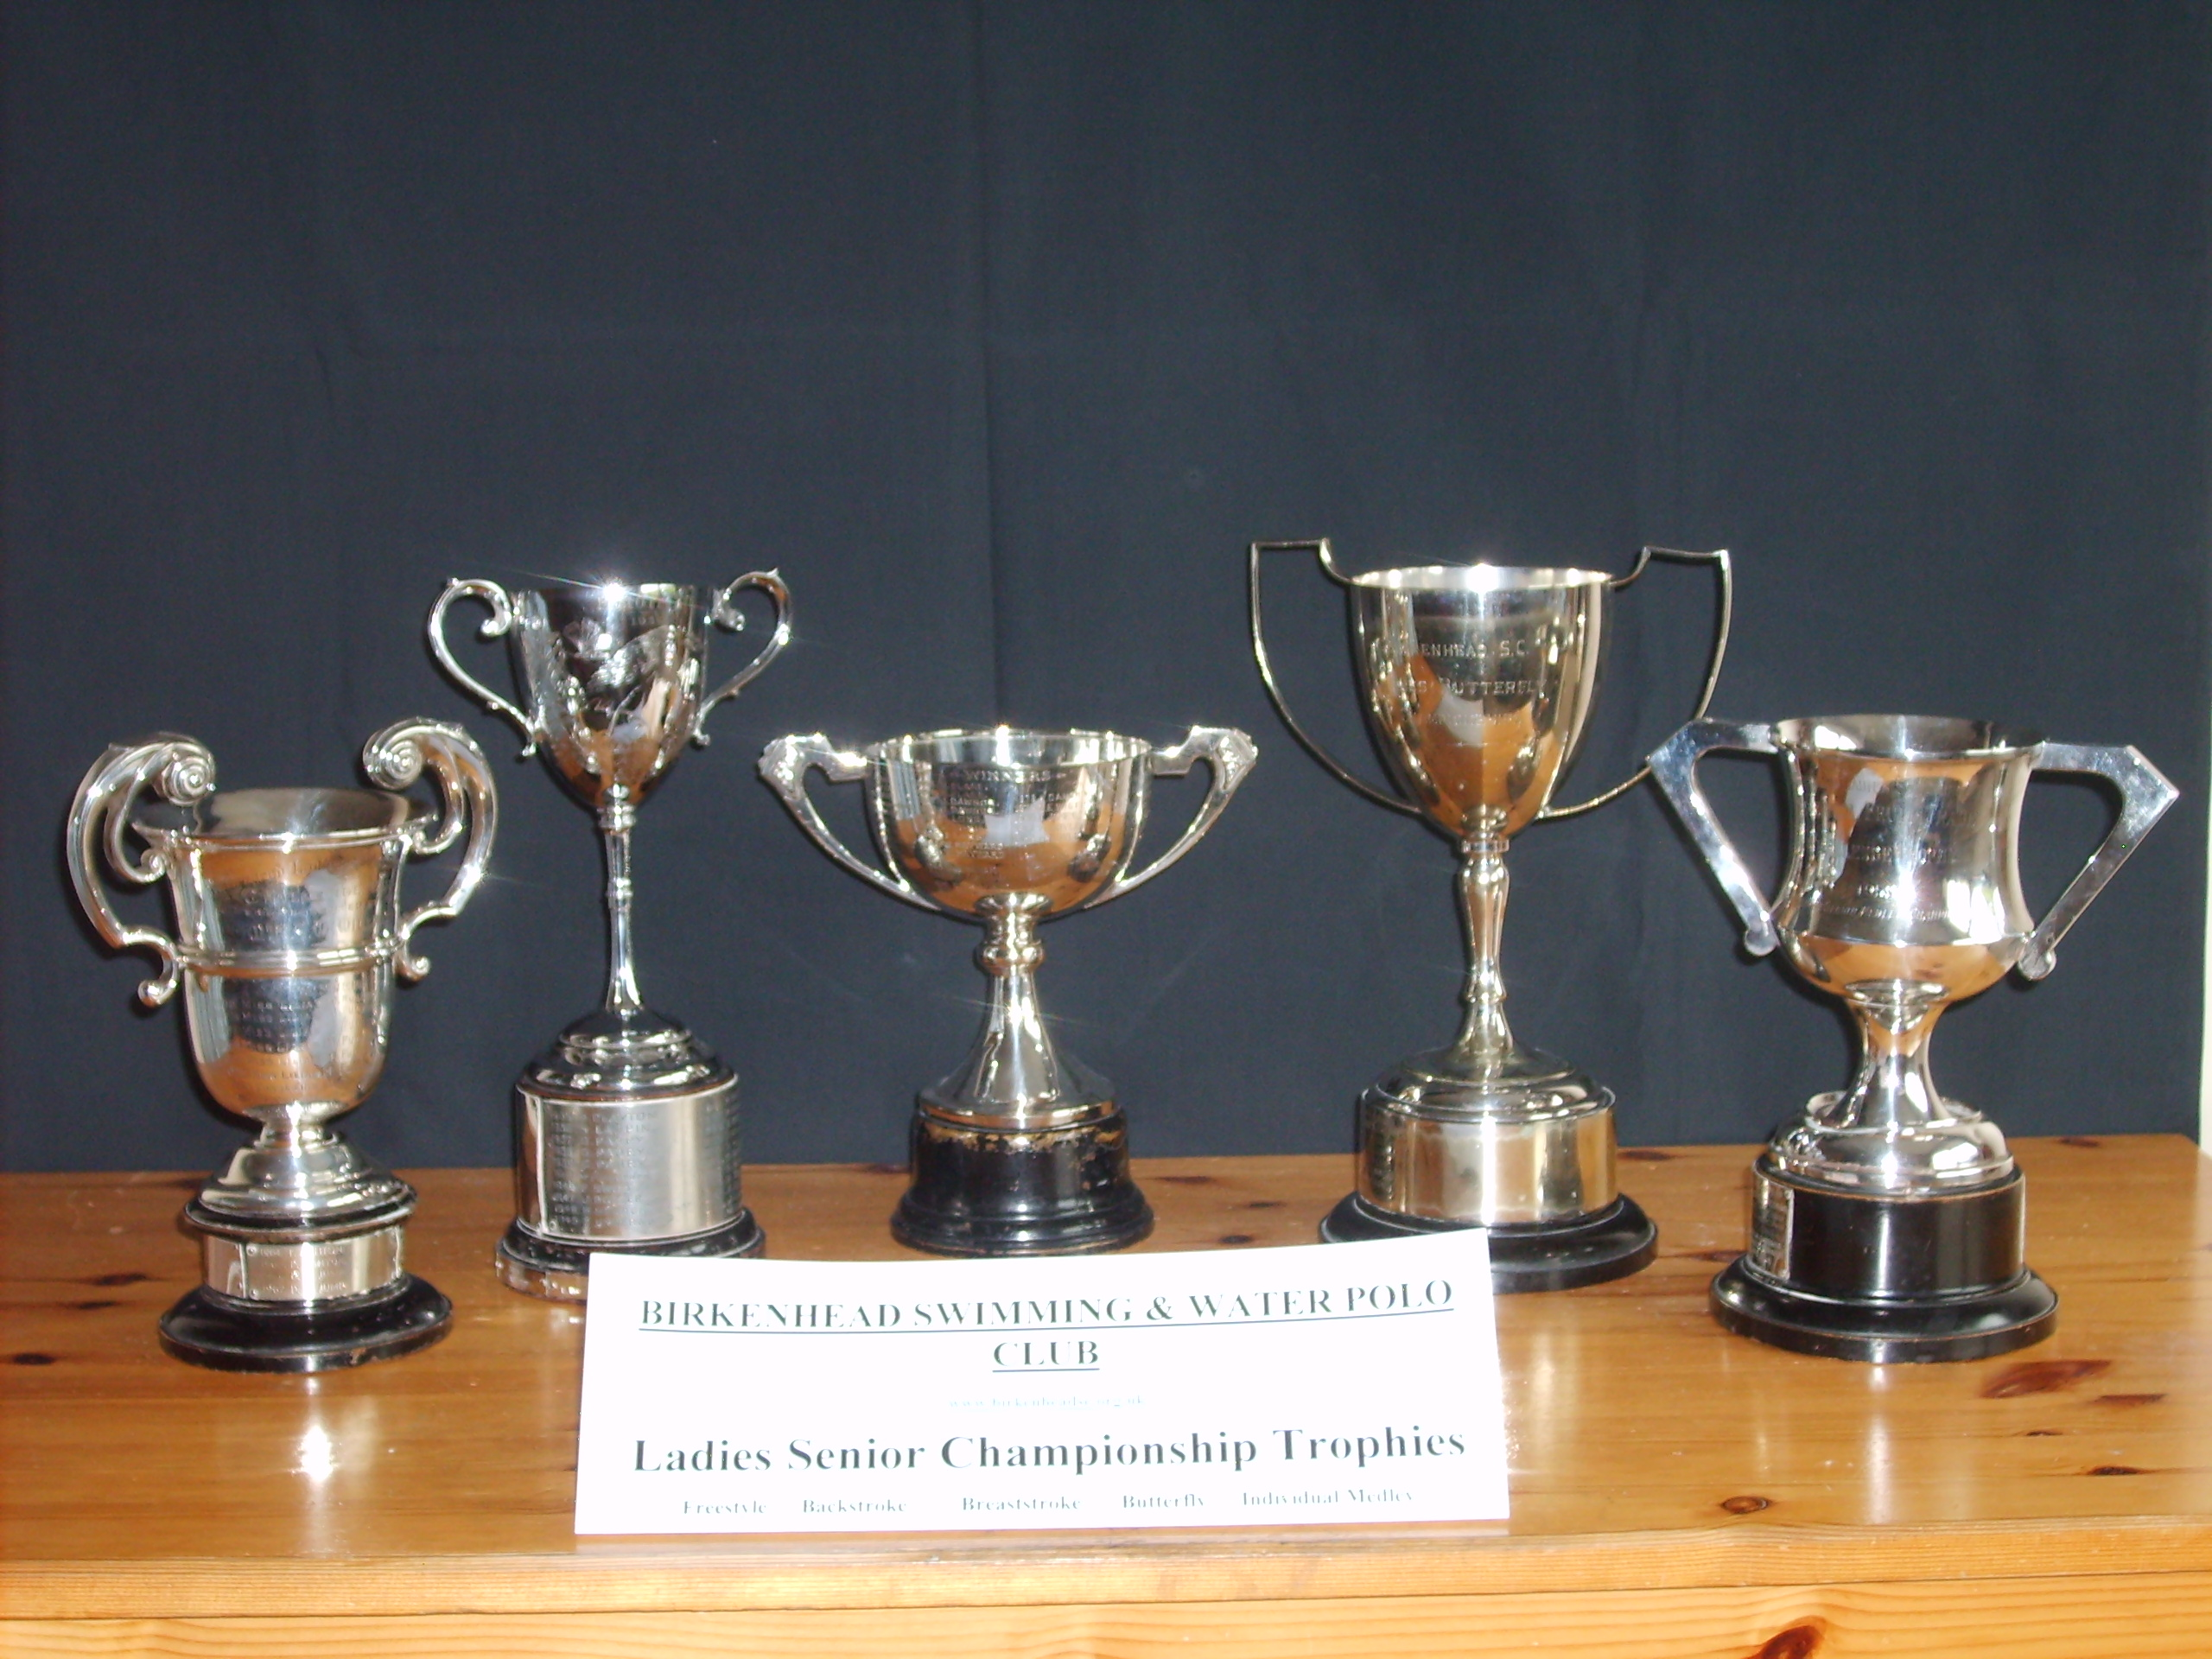 Ladies Senior Championship Trophies